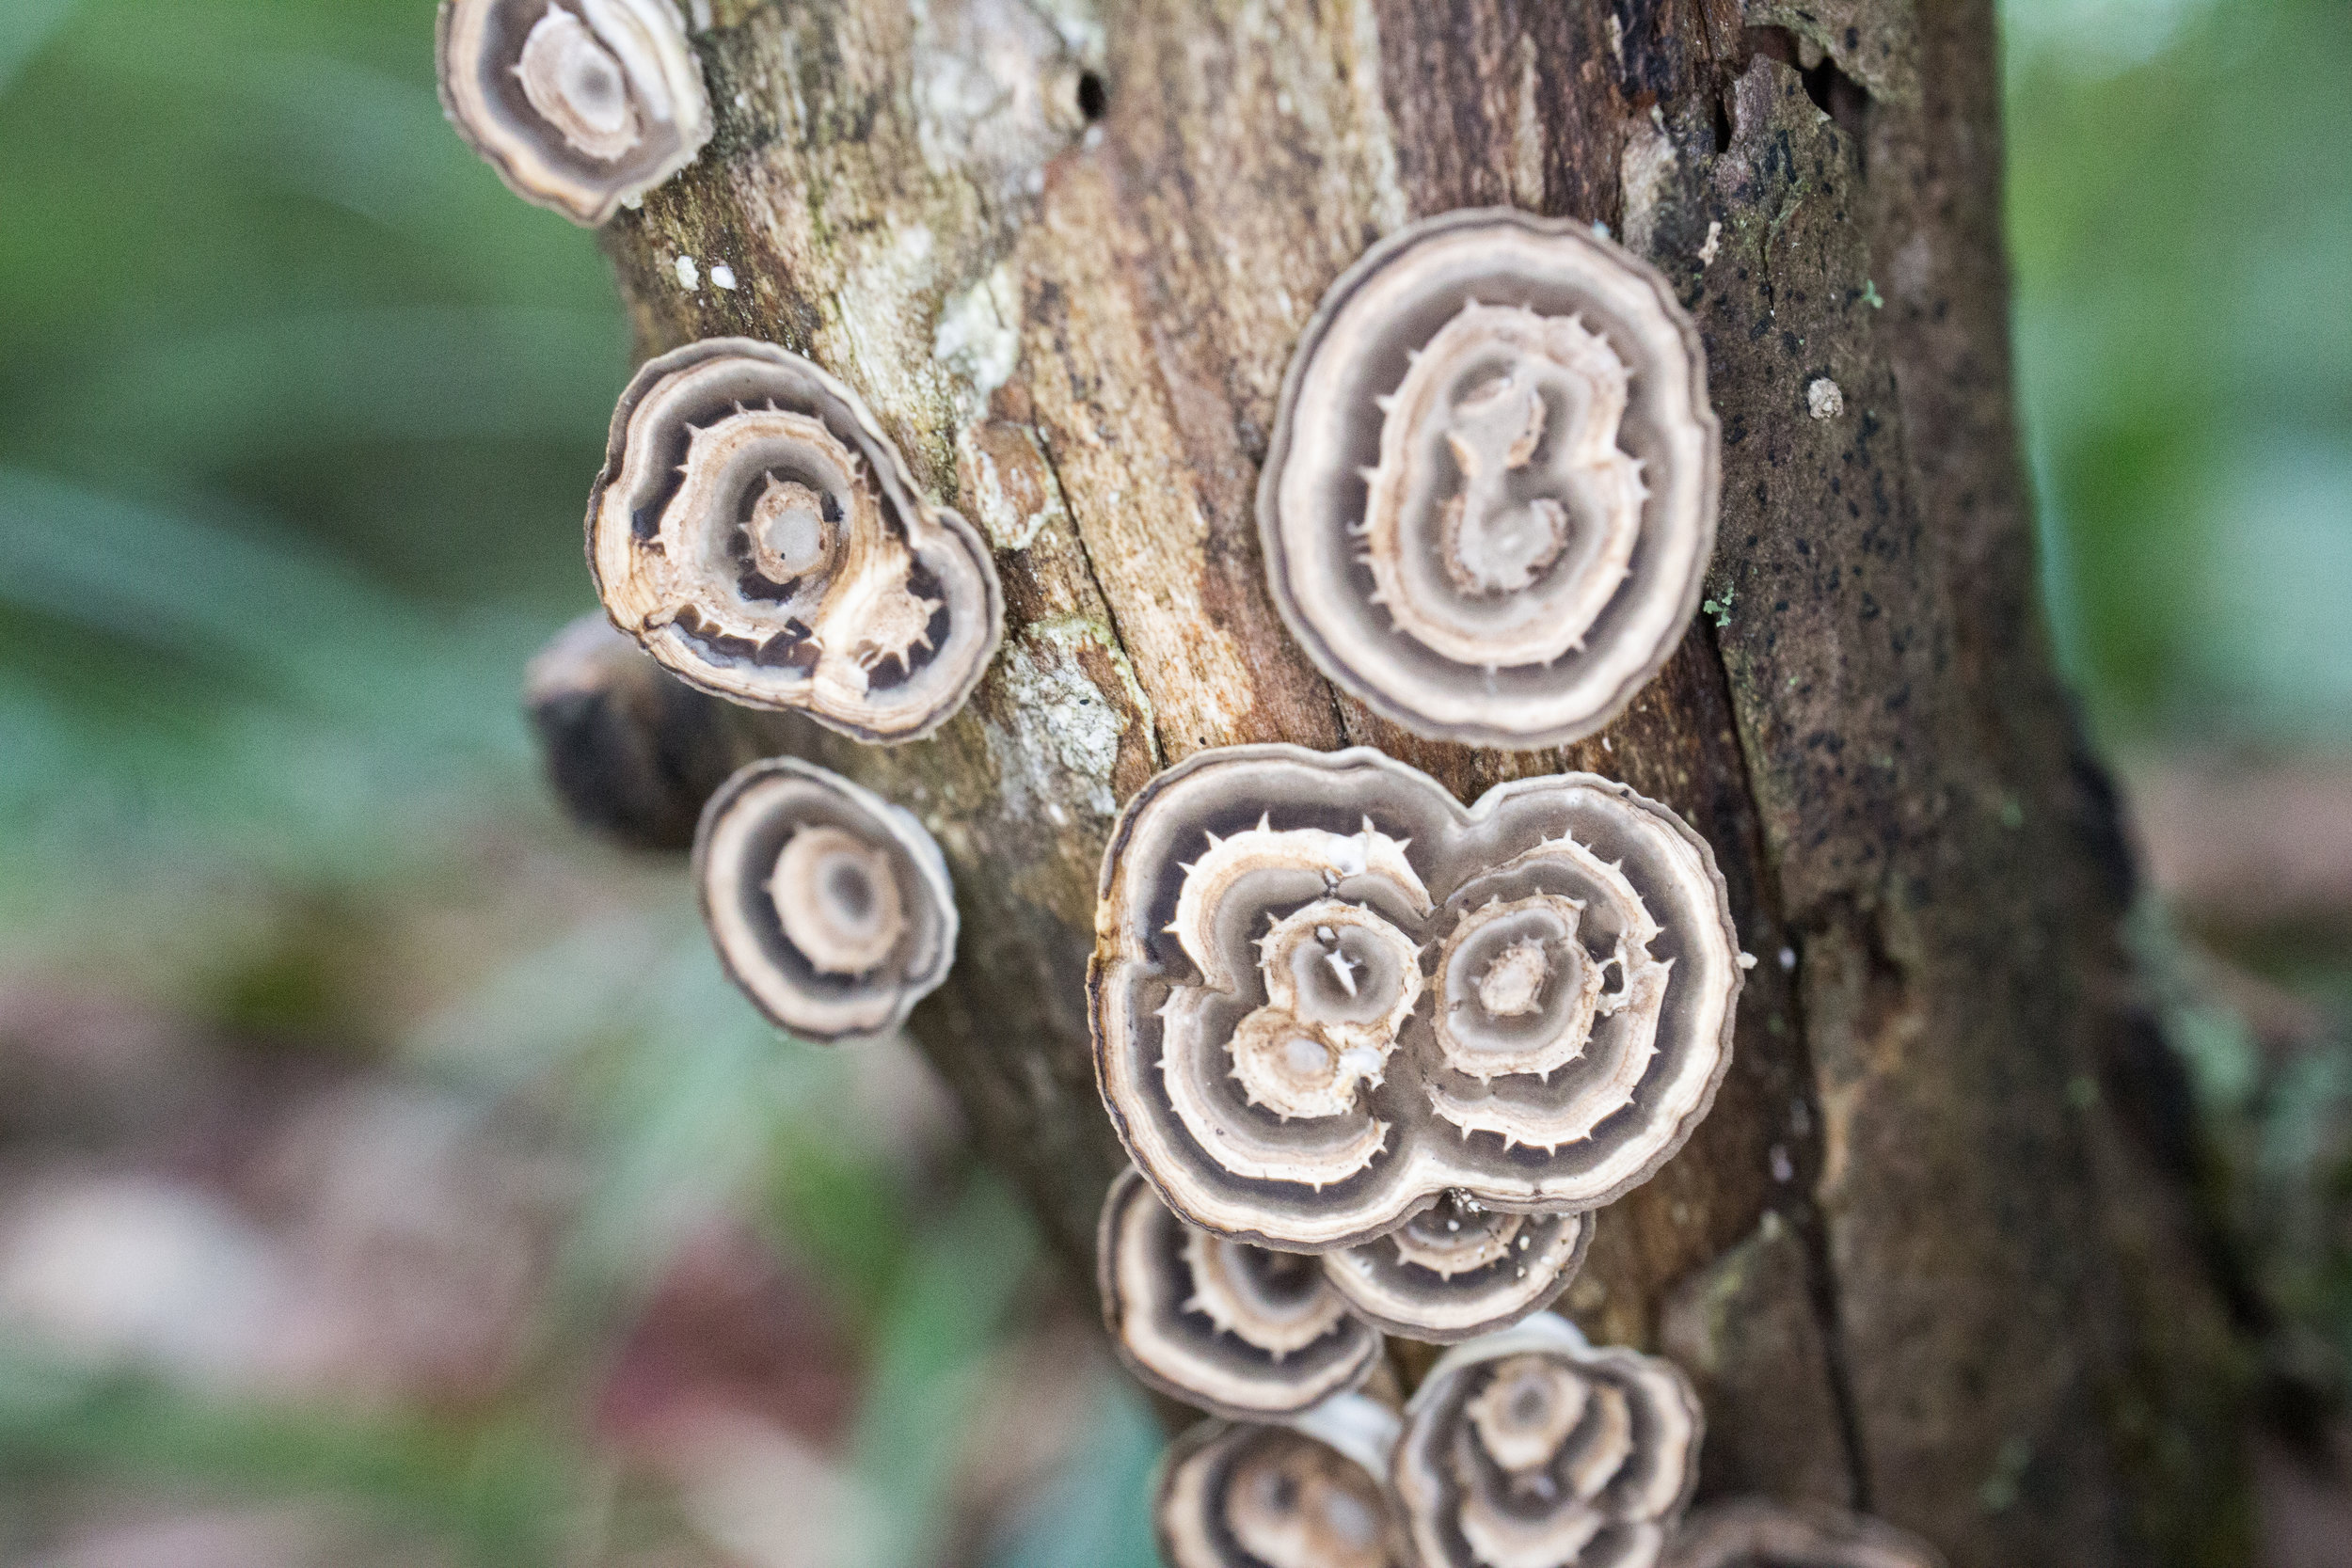 Trametes conchifer